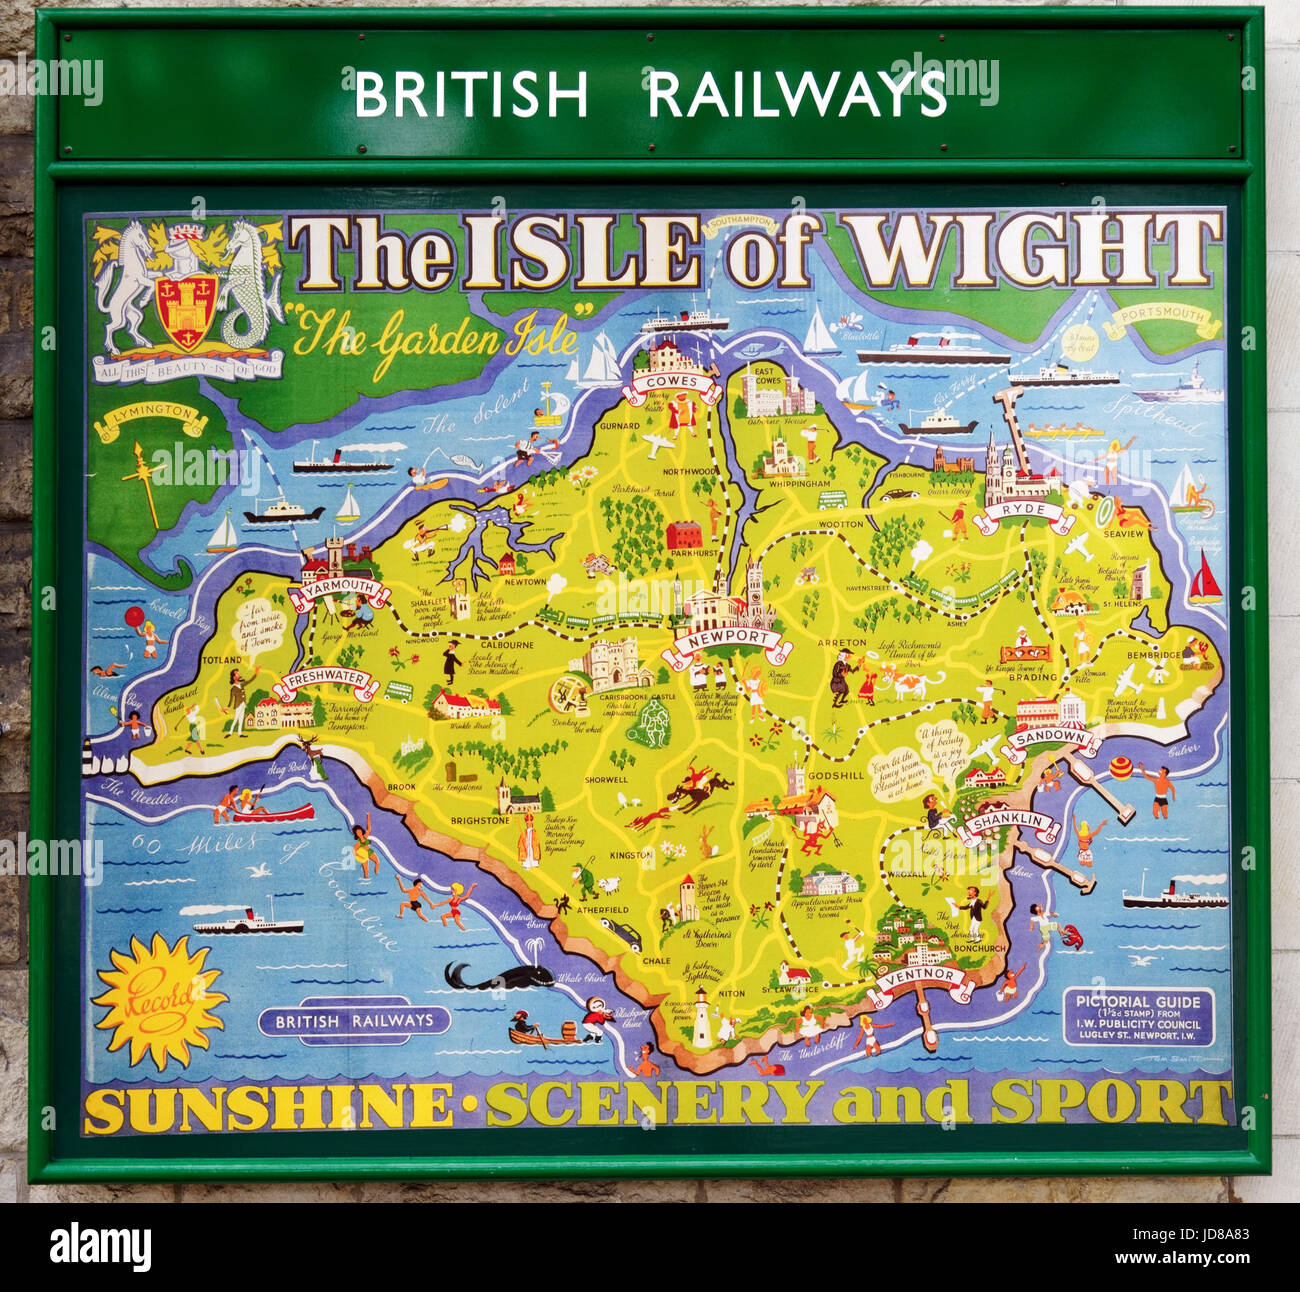 a4bcd67abe07b British Railway Travel Poster Stock Photos & British Railway Travel ...